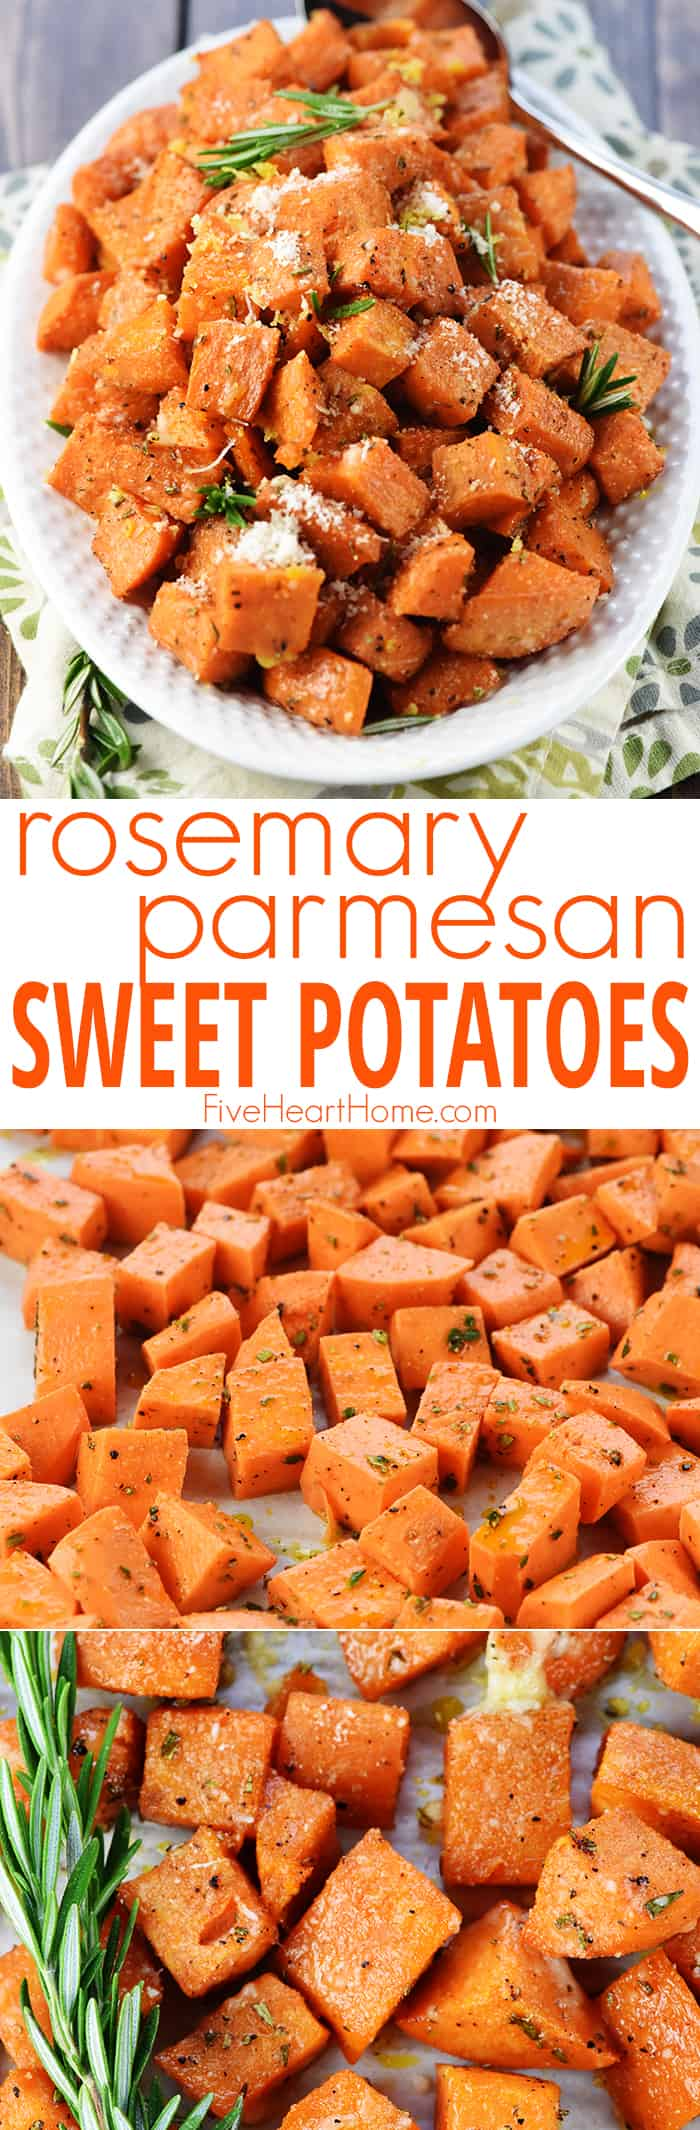 Rosemary Parmesan Roasted Sweet Potatoes Collage with Text Overlay